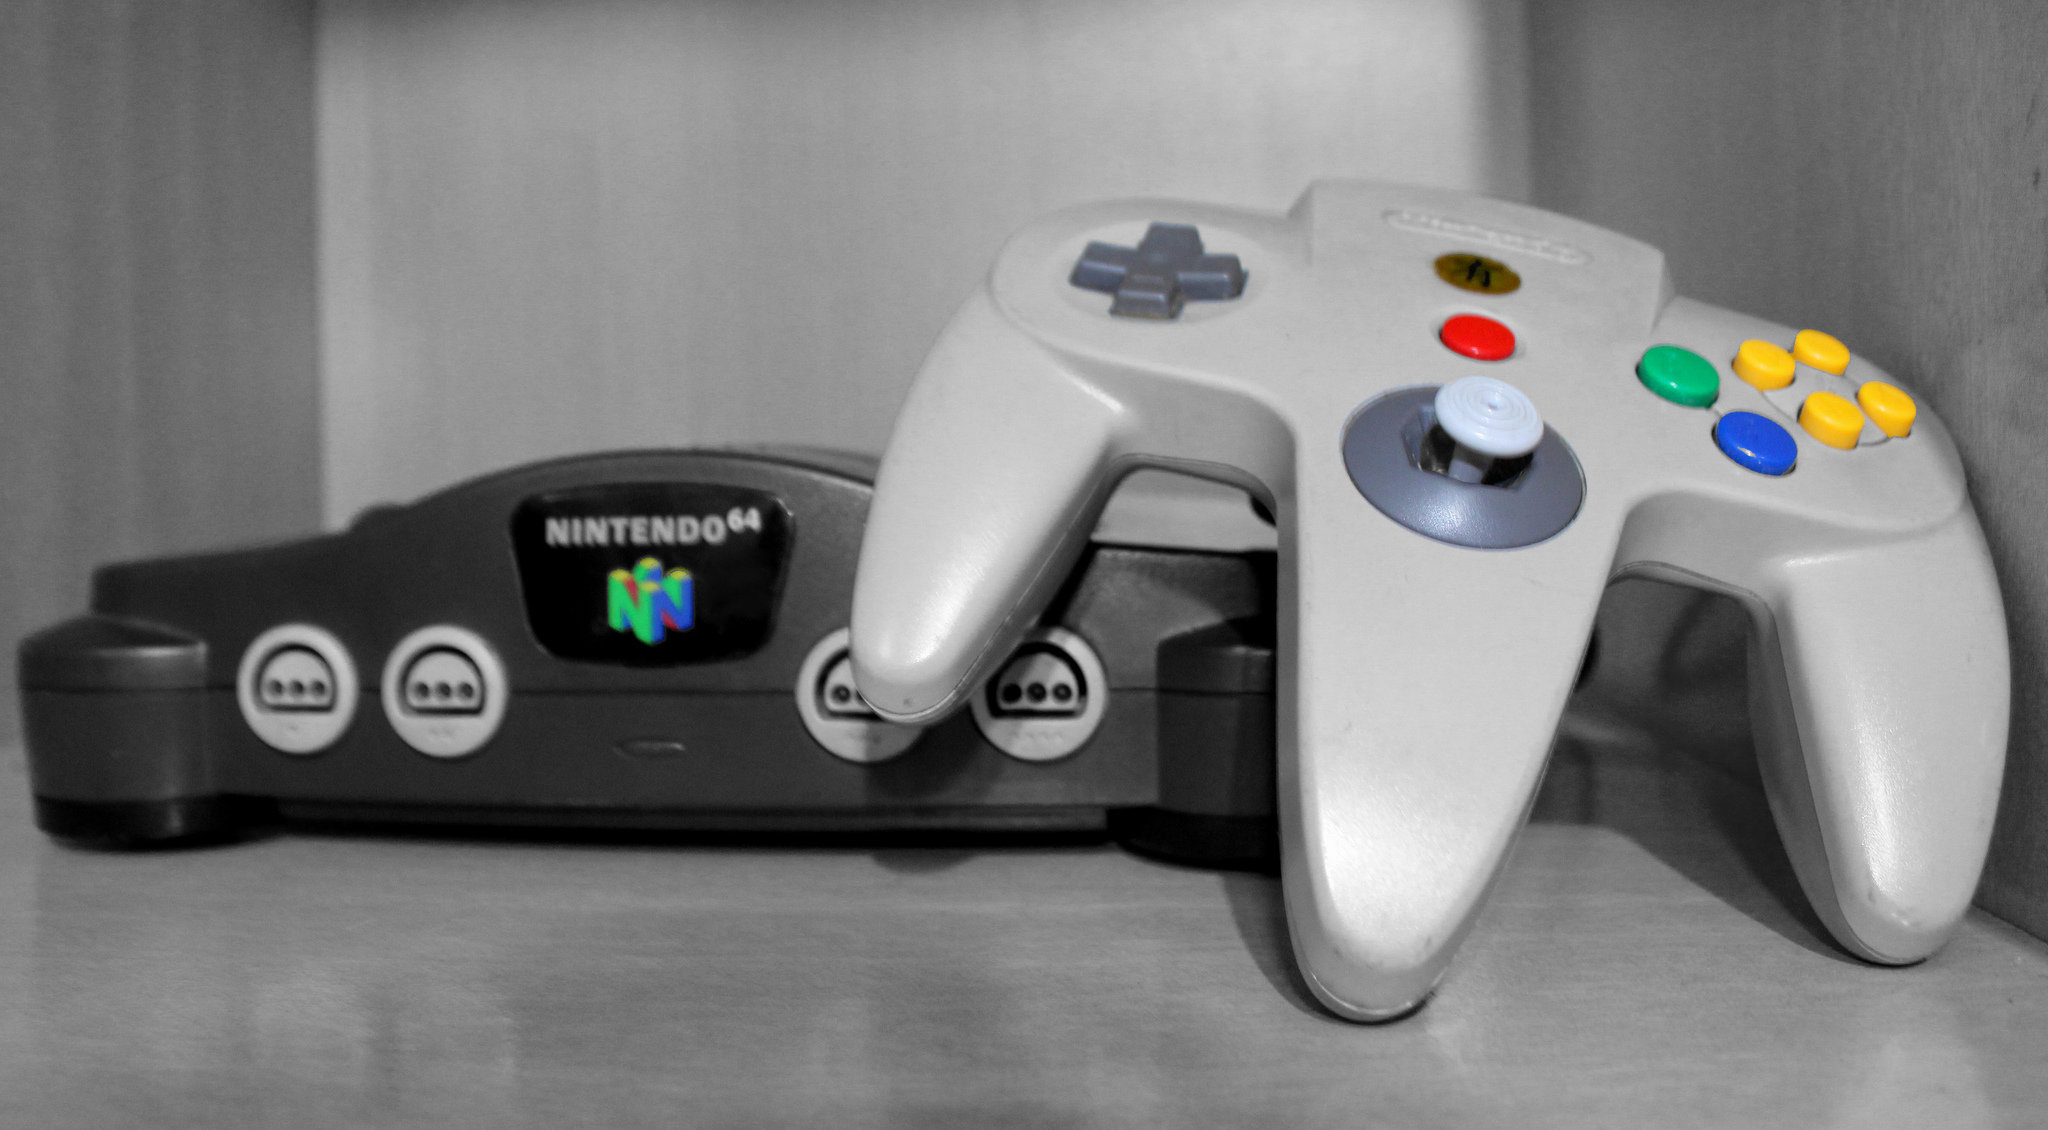 First ever revolutionary N64 Vulkan emulator coming soon – only for libretro (paraLLEl)